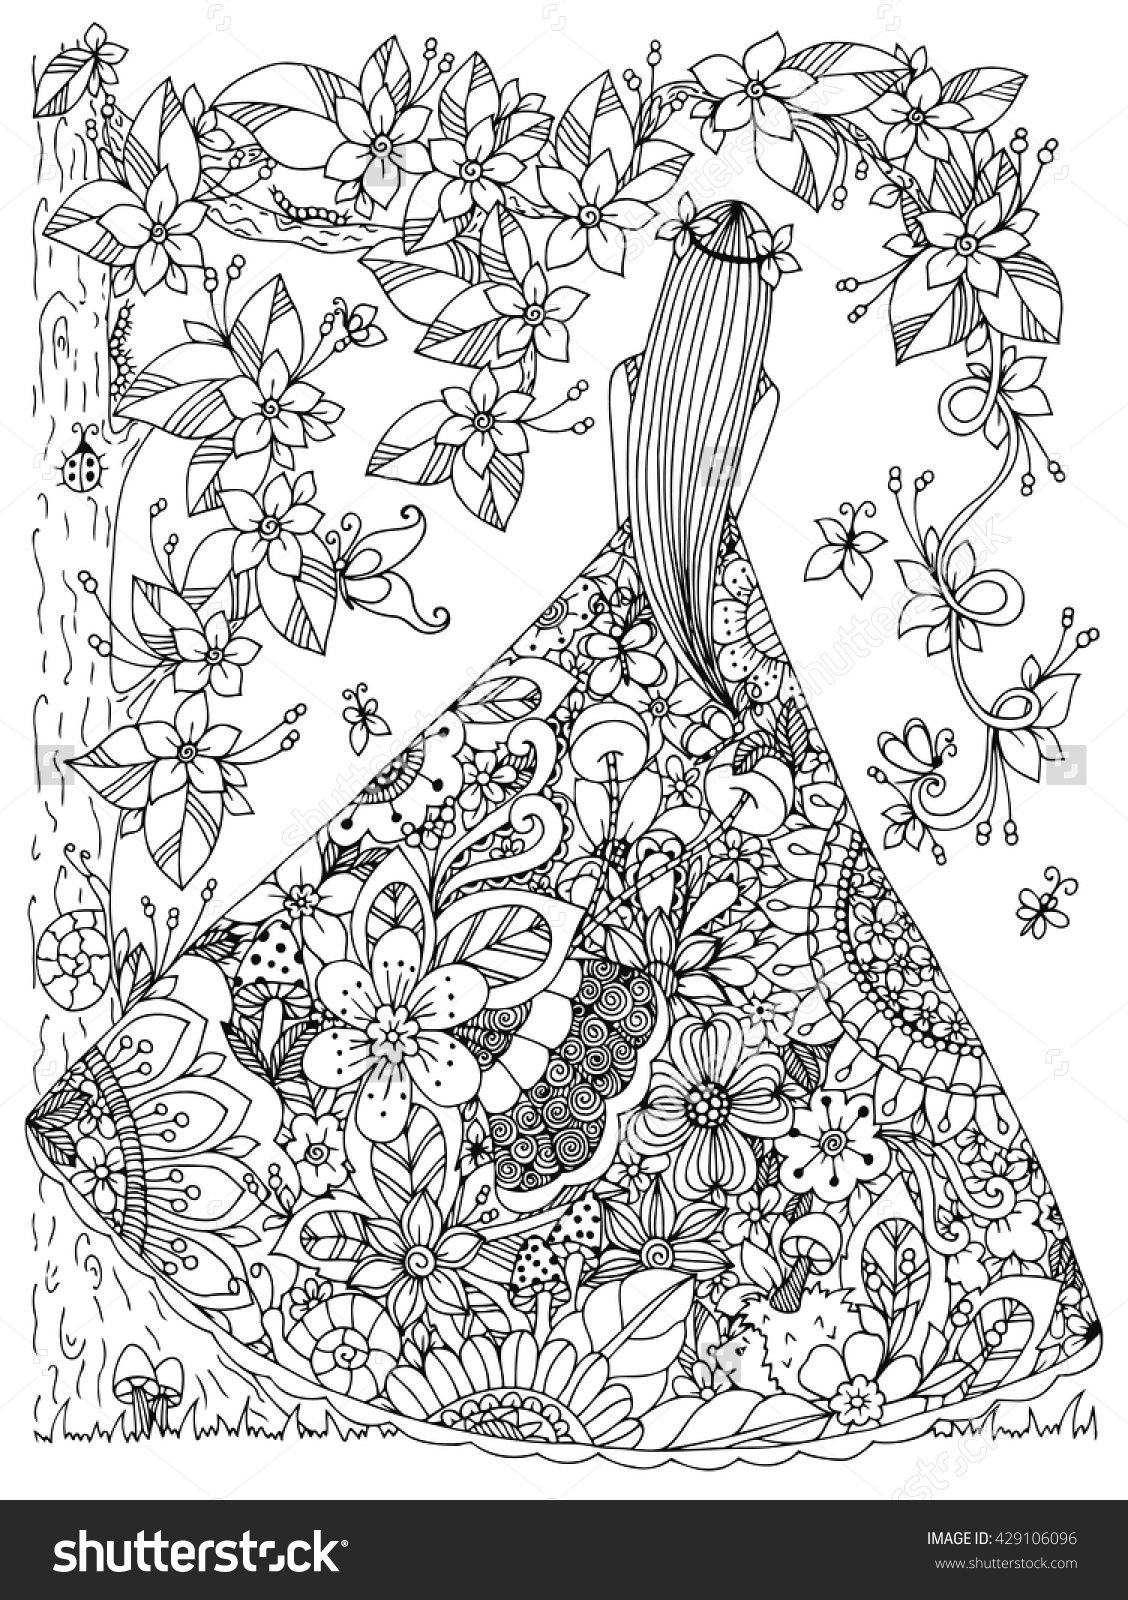 in a floral dress doodle flowers tree zen coloring page